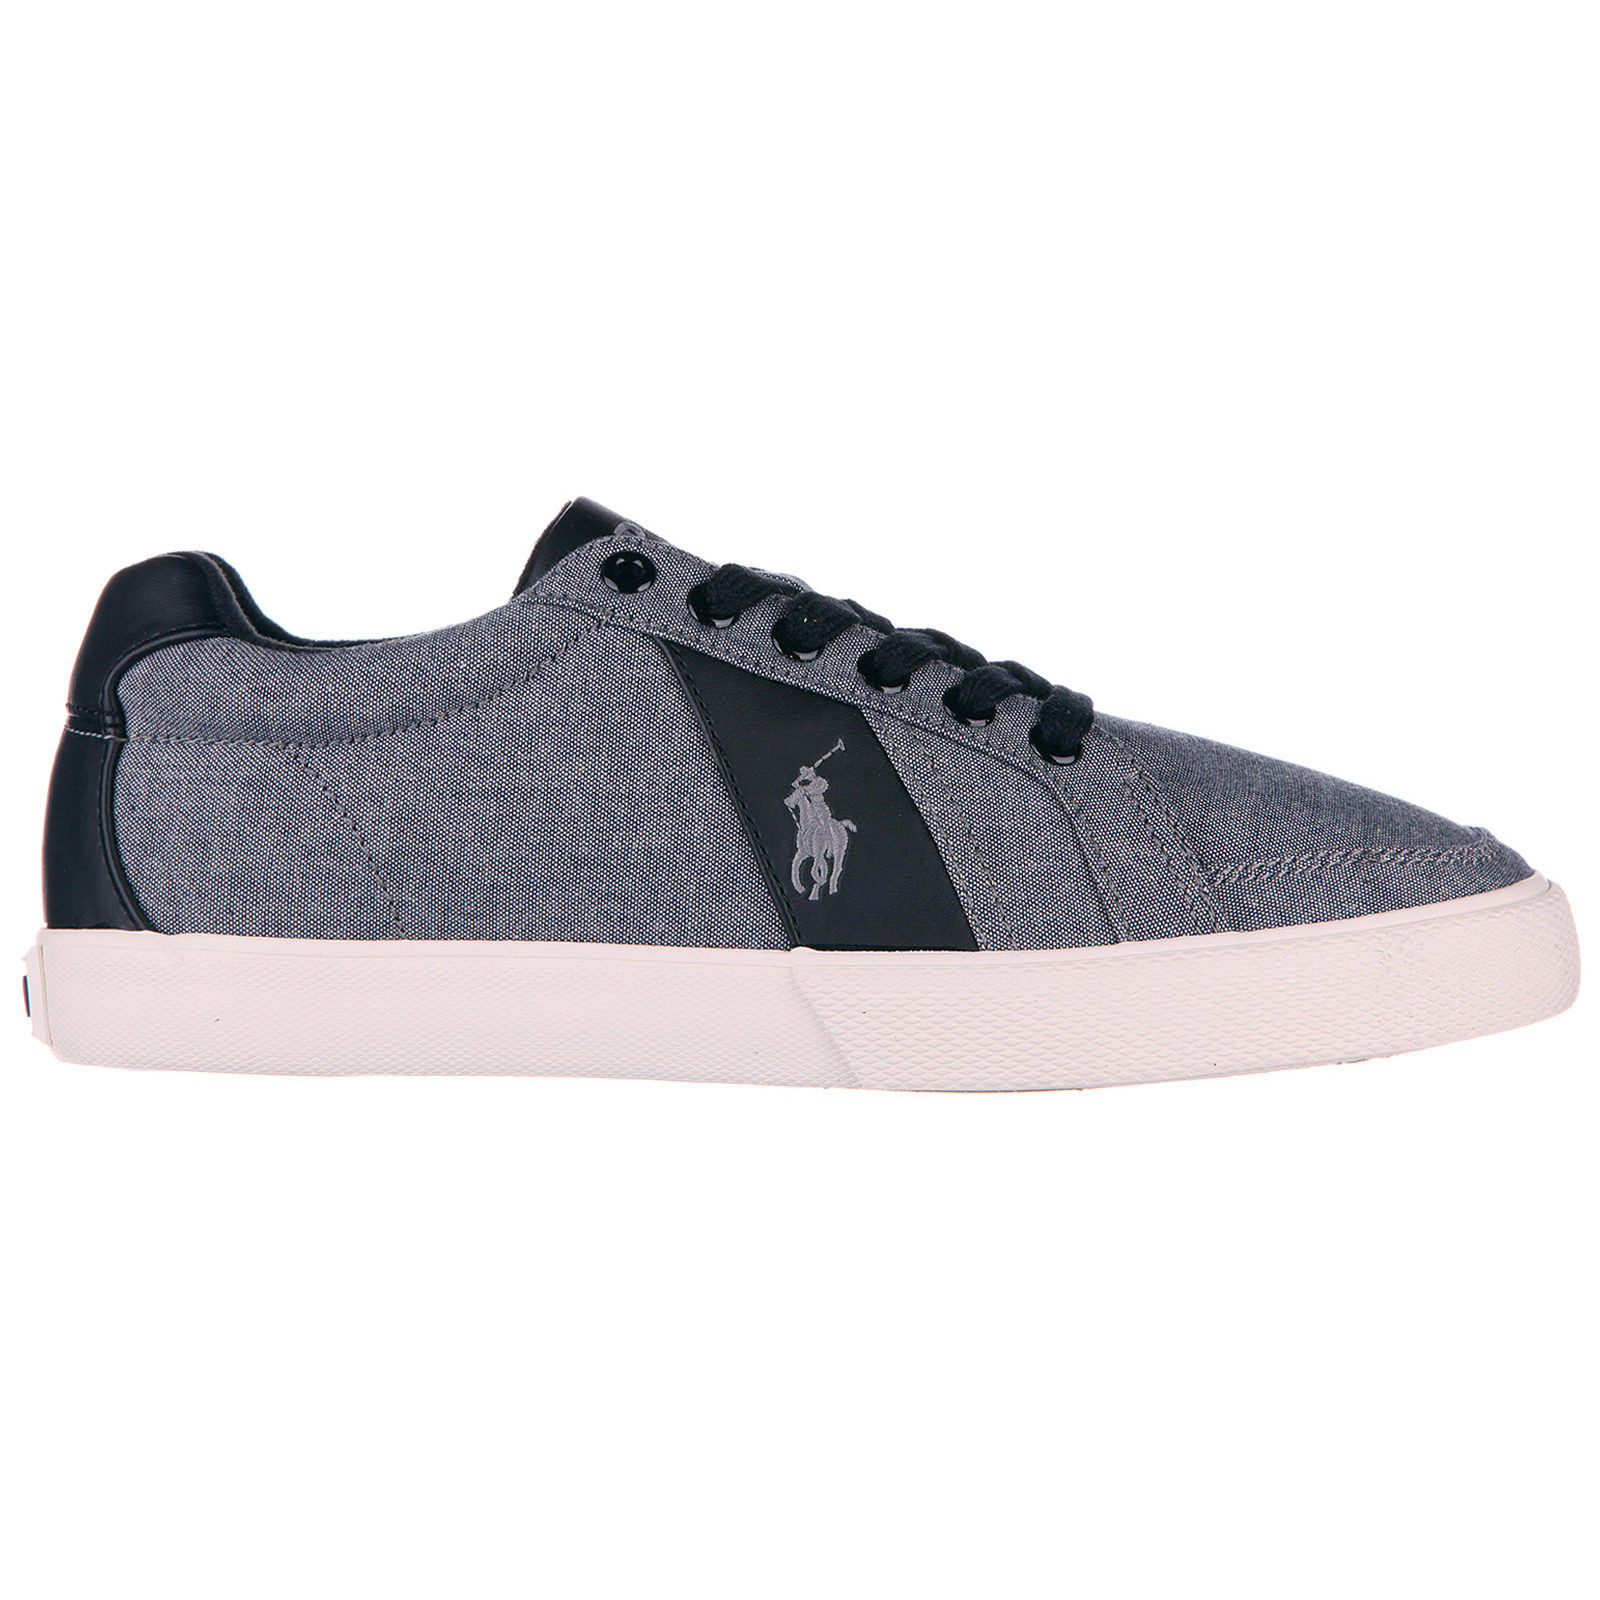 Chaussures baskets sneakers homme en coton hugh